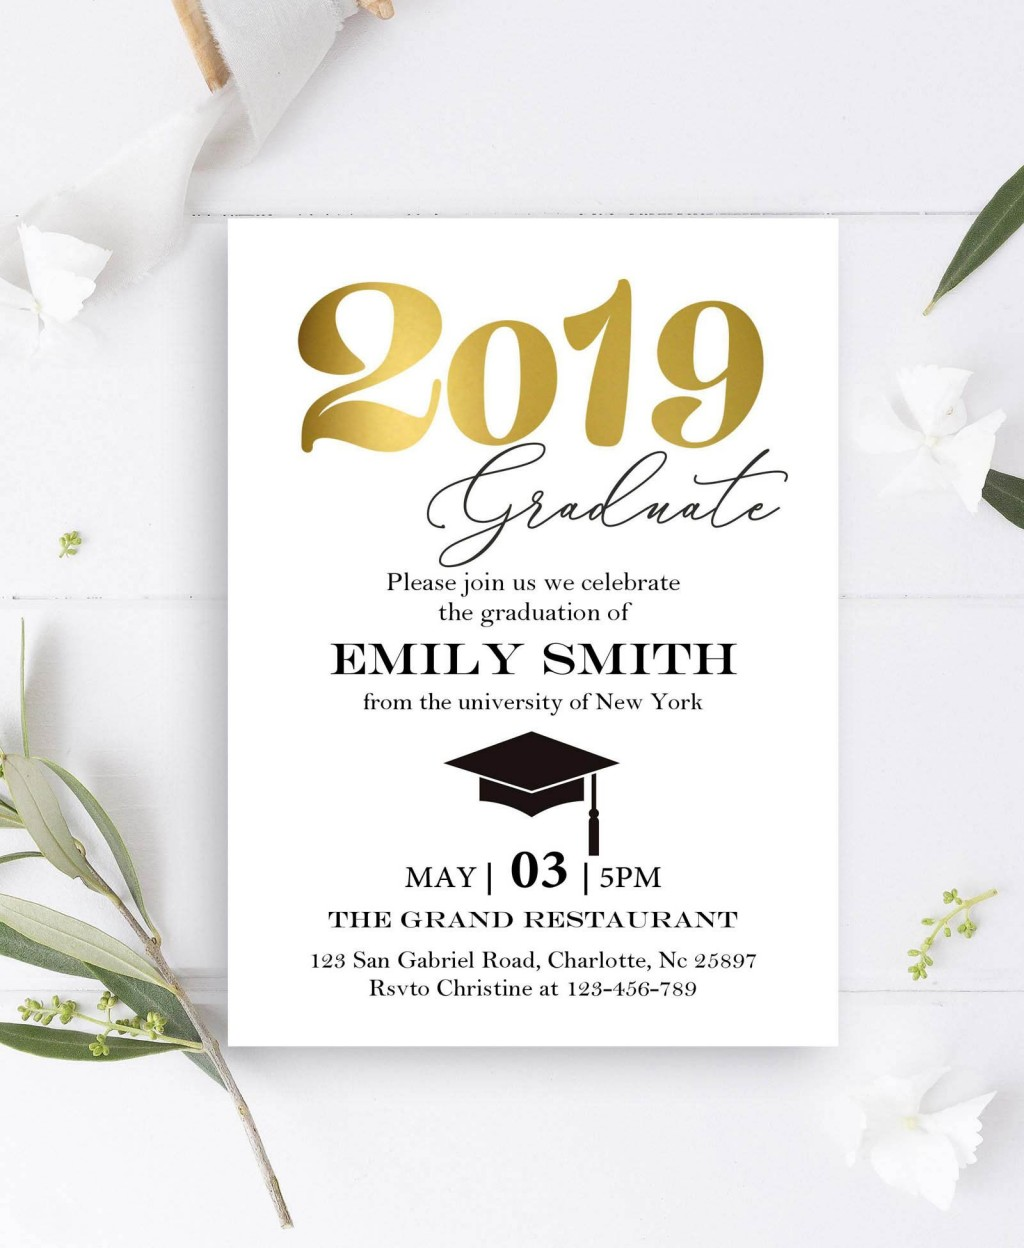 004 Impressive College Graduation Invitation Template Design  Party Free For WordLarge